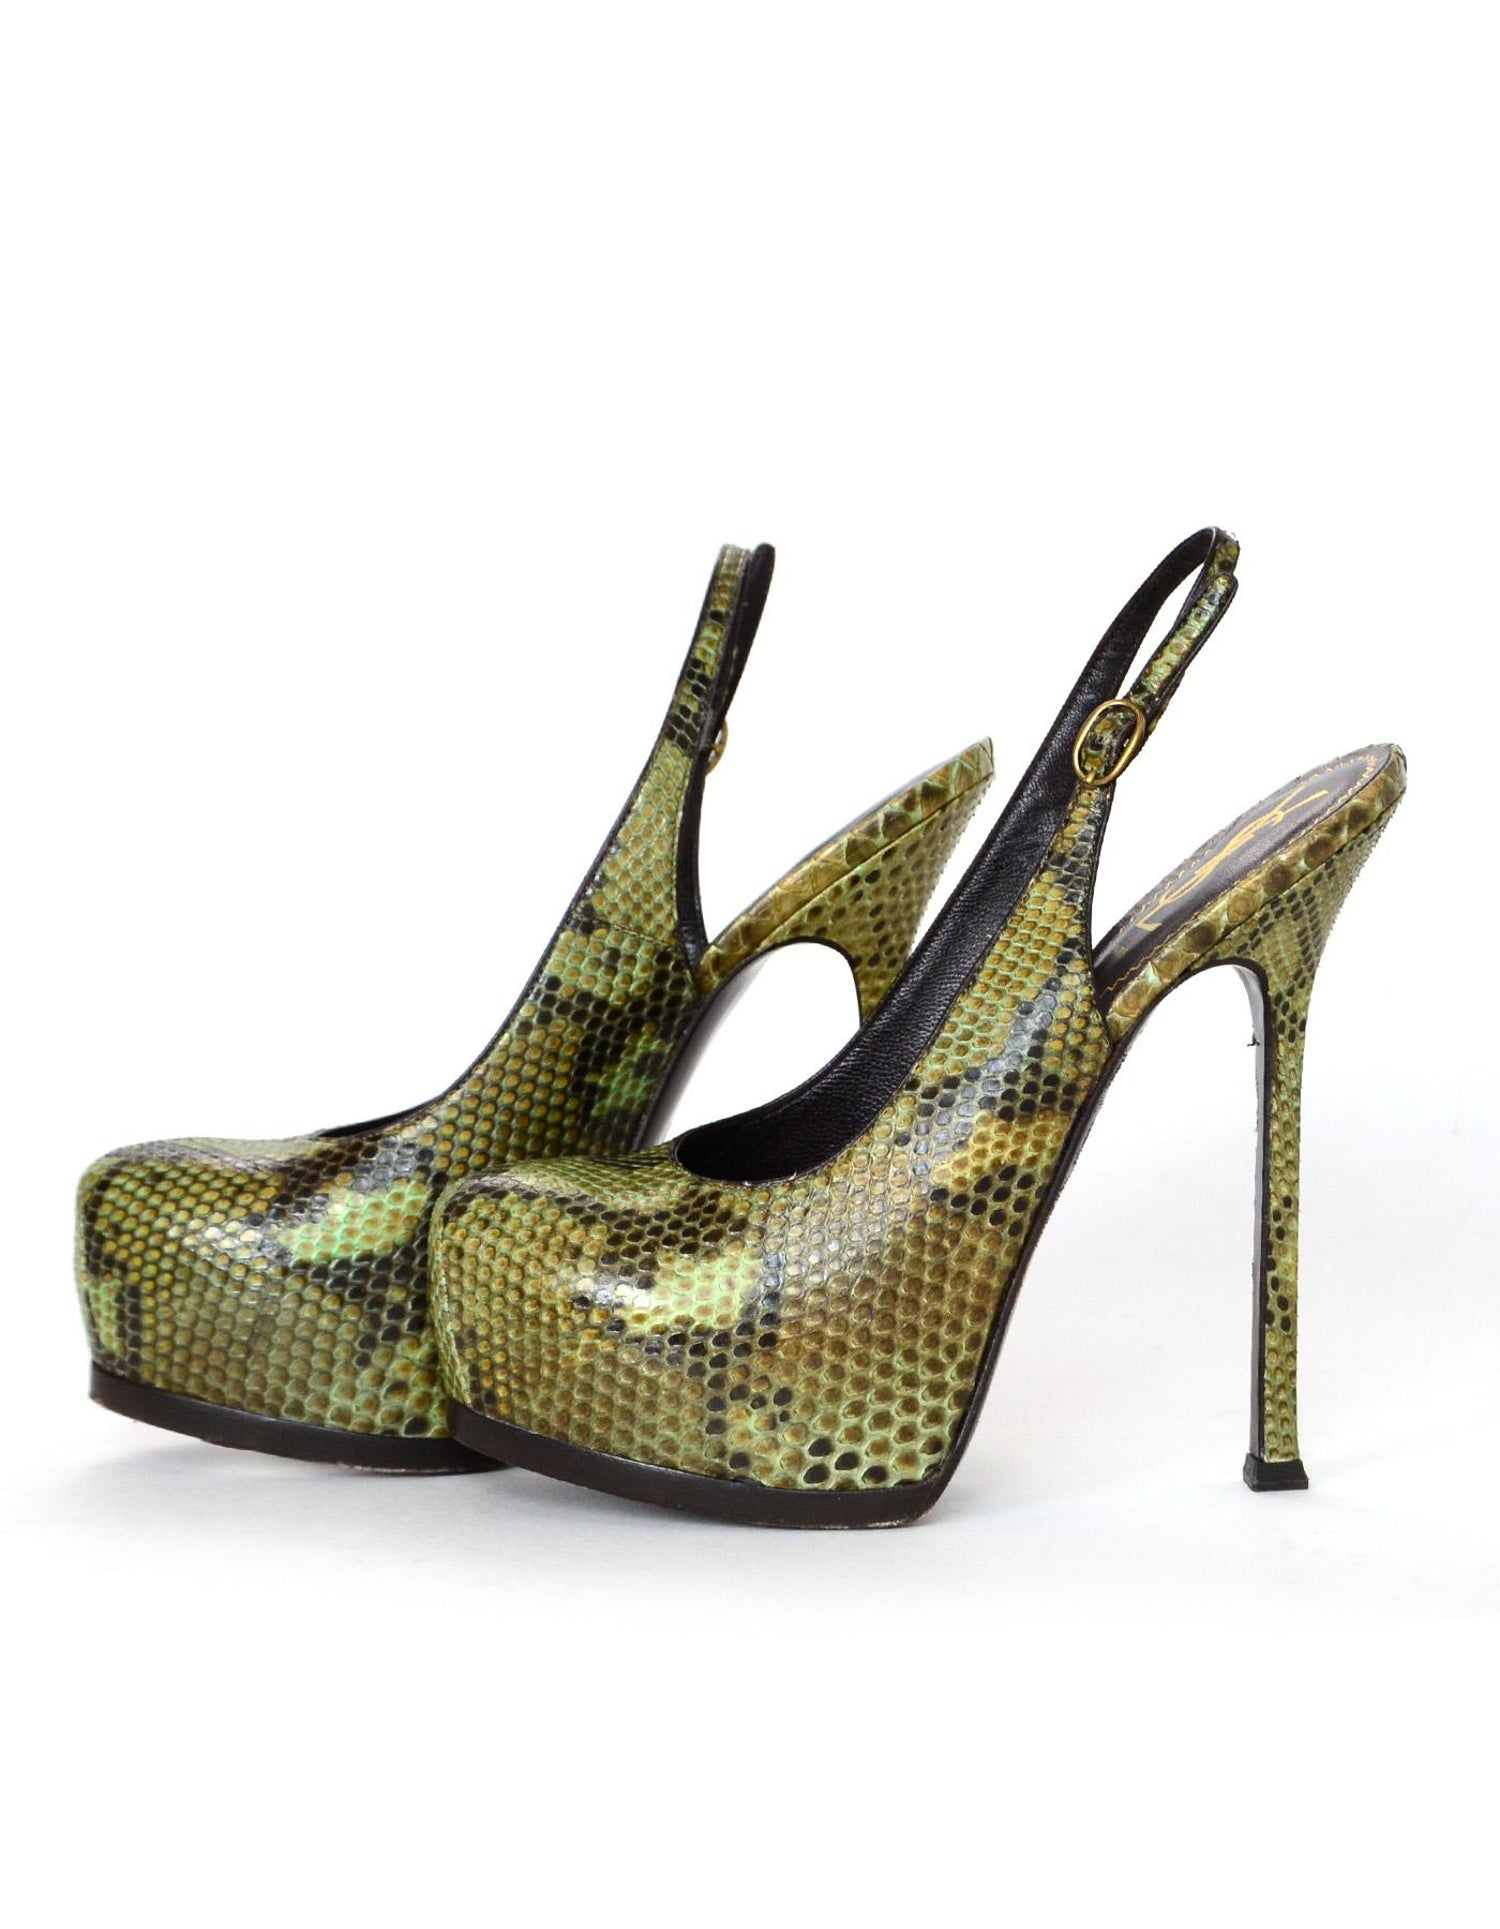 af35d440fb6d YSL Tribute Green Python Hidden Platform Slingback Heel Sz 37.5 For Sale at  1stdibs